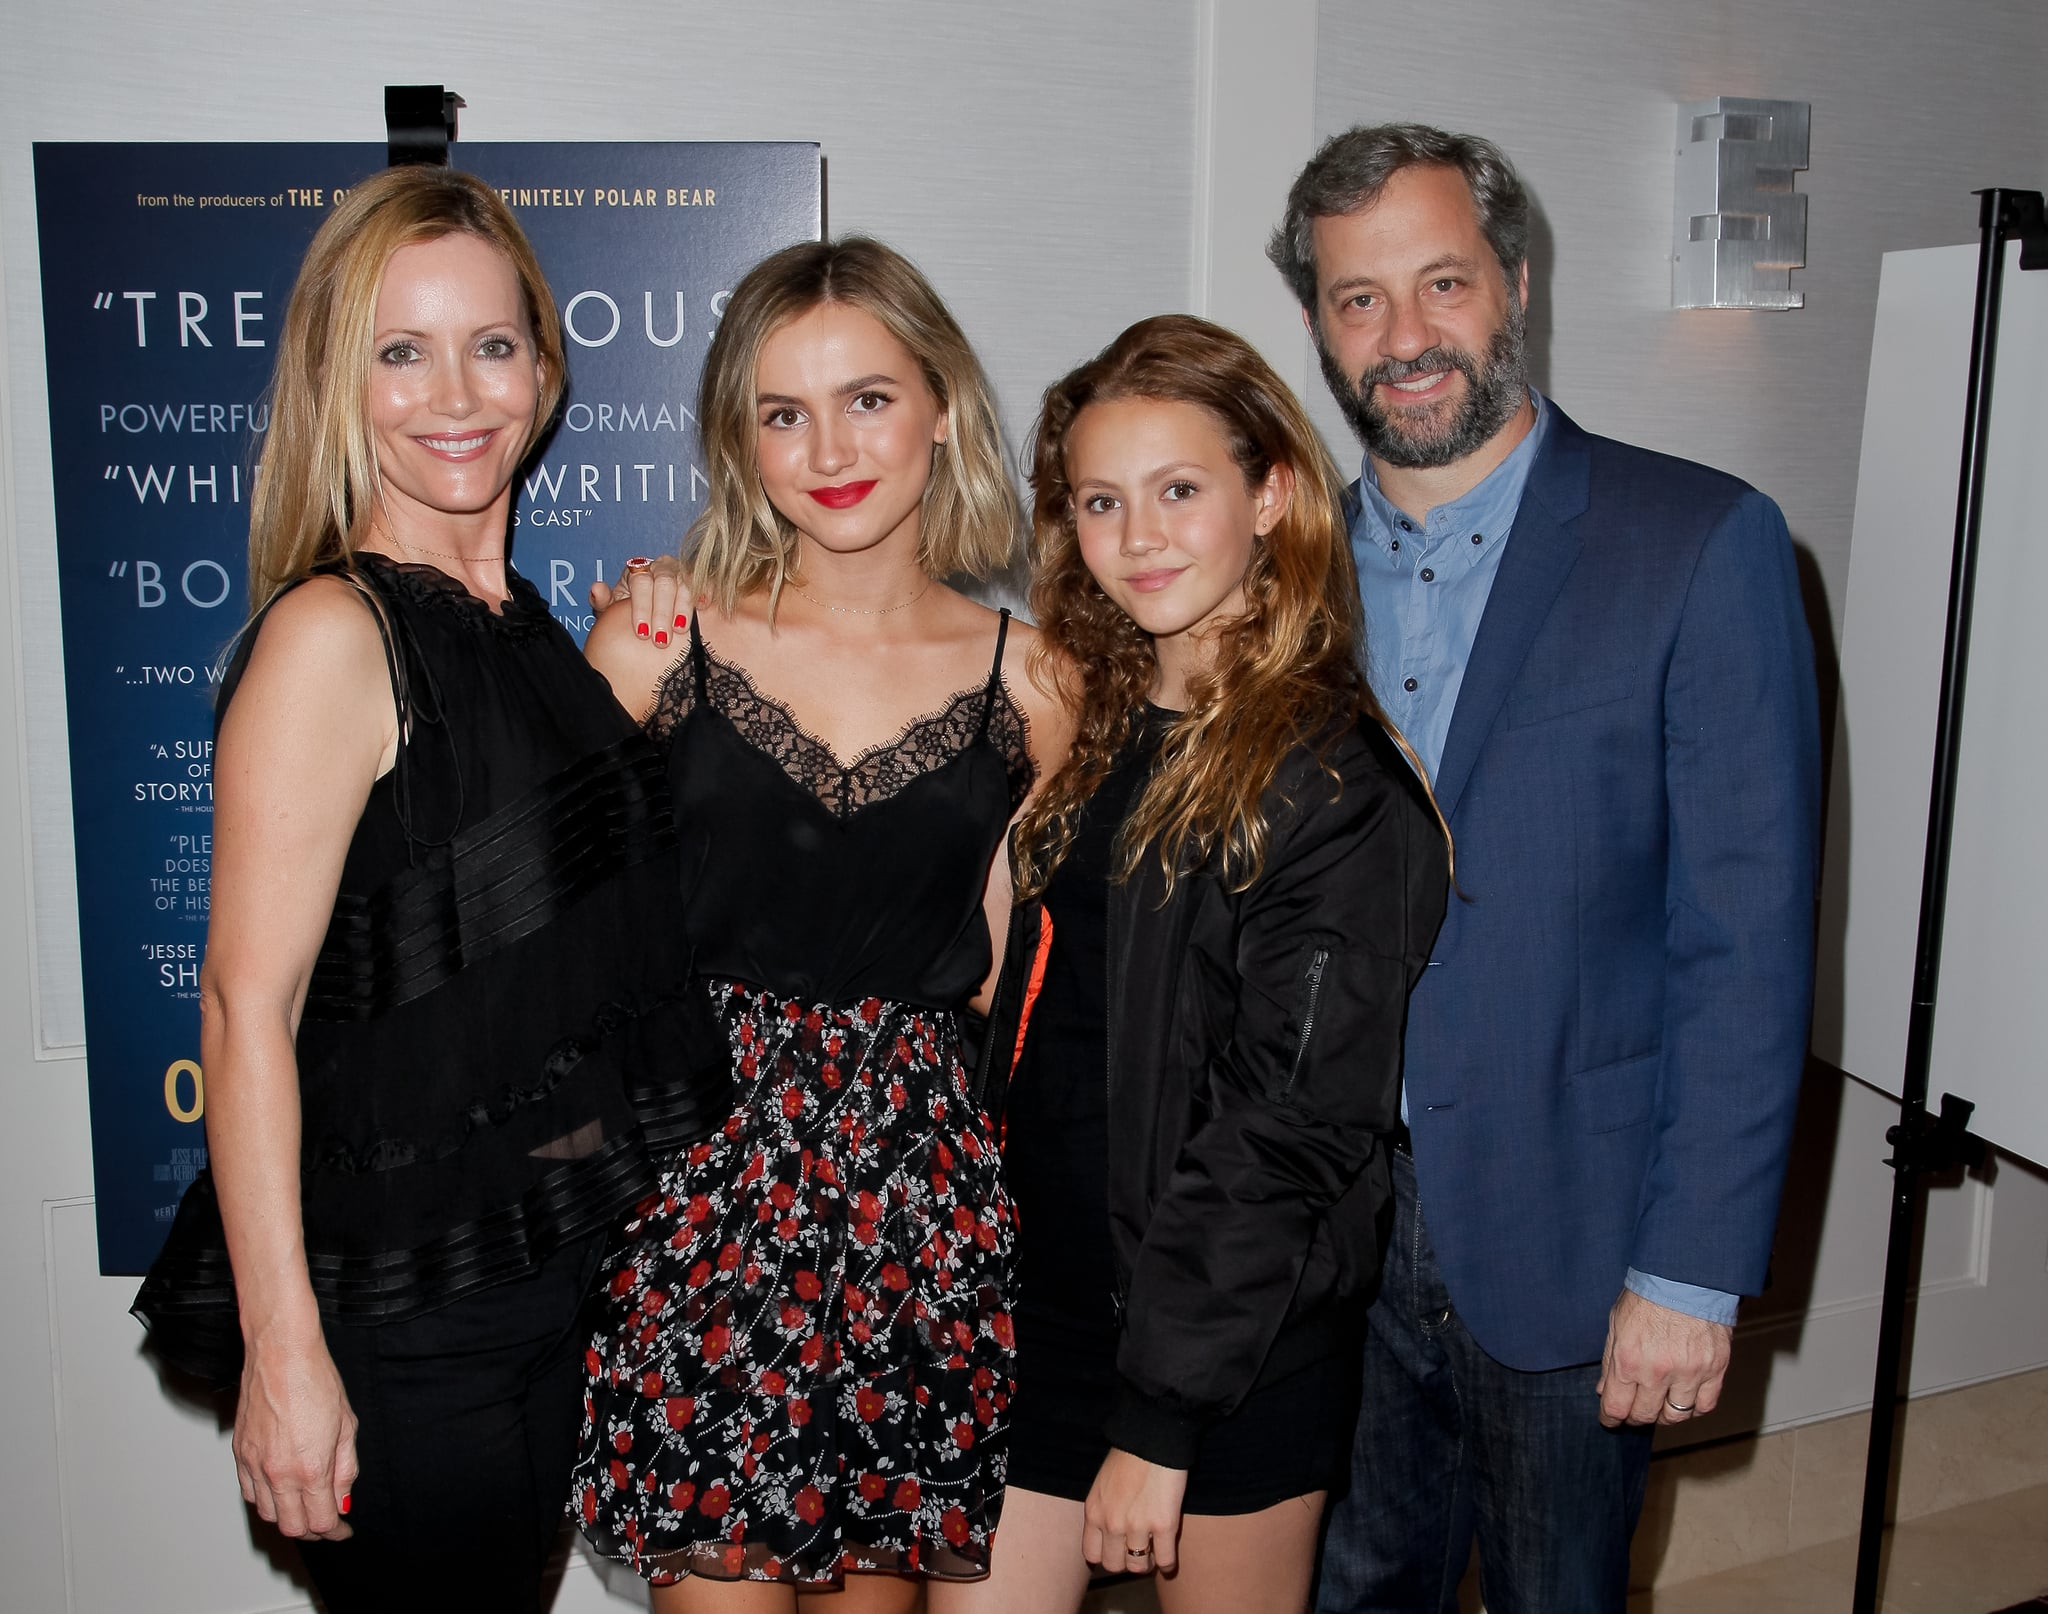 WEST HOLLYWOOD, CA - AUGUST 31:  (L-R) Leslie Mann, Maude Apatow, Iris Apatow and Judd Apatow attend the Premiere of Vertical Entertainment's 'Other People' at The London West Hollywood on August 31, 2016 in West Hollywood, California.  (Photo by Tibrina Hobson/Getty Images)